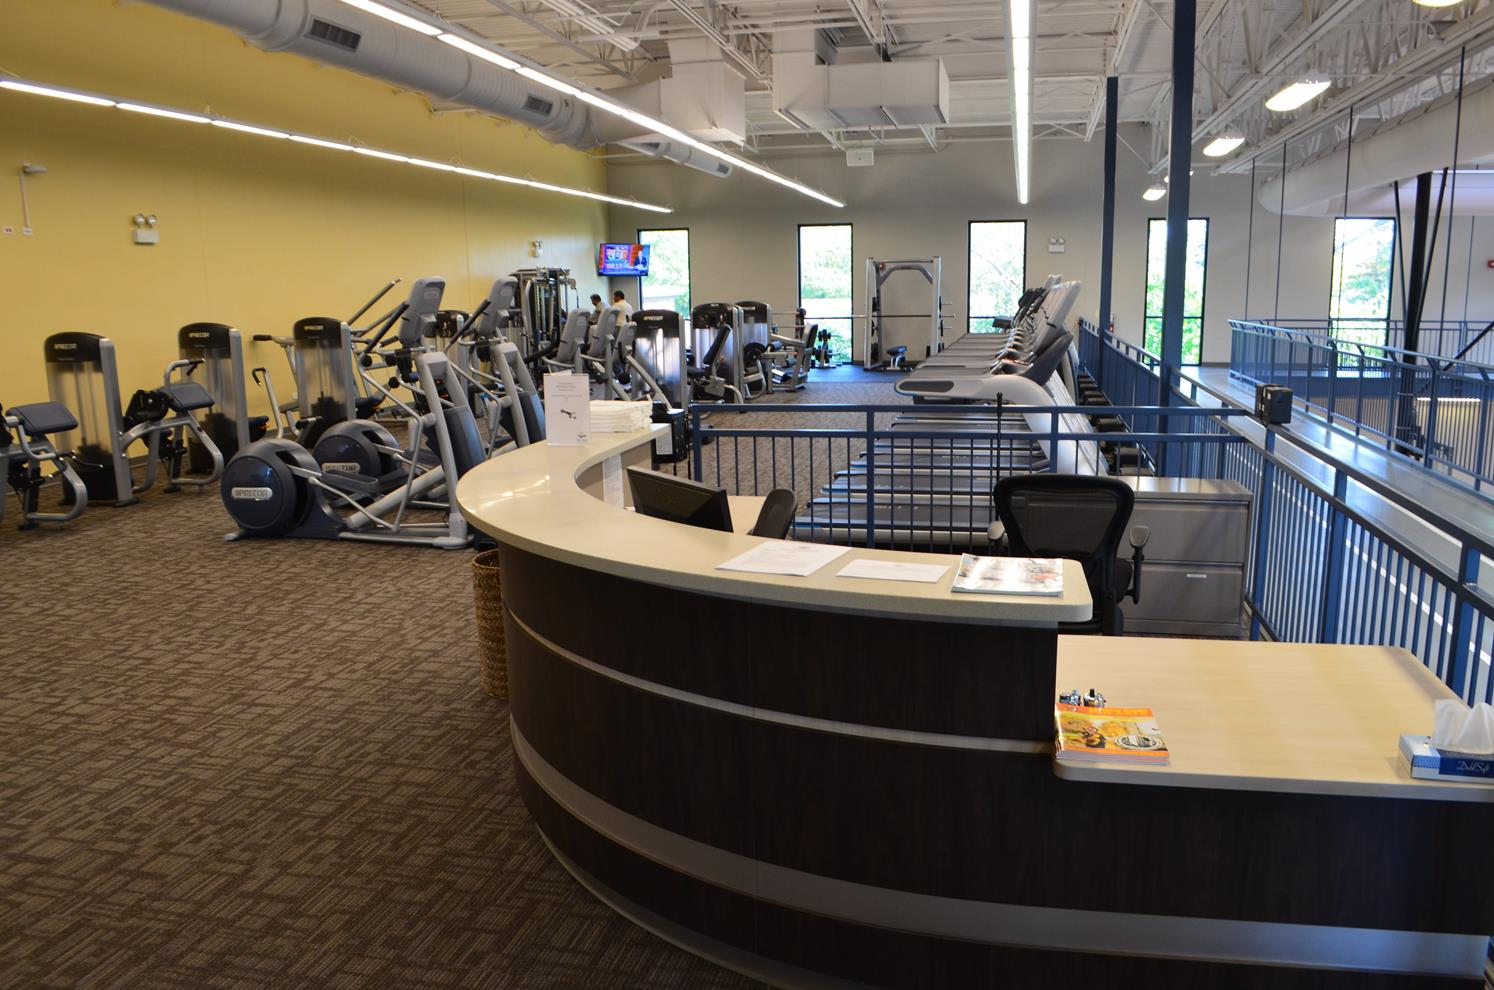 Front Desk at Fitness Center